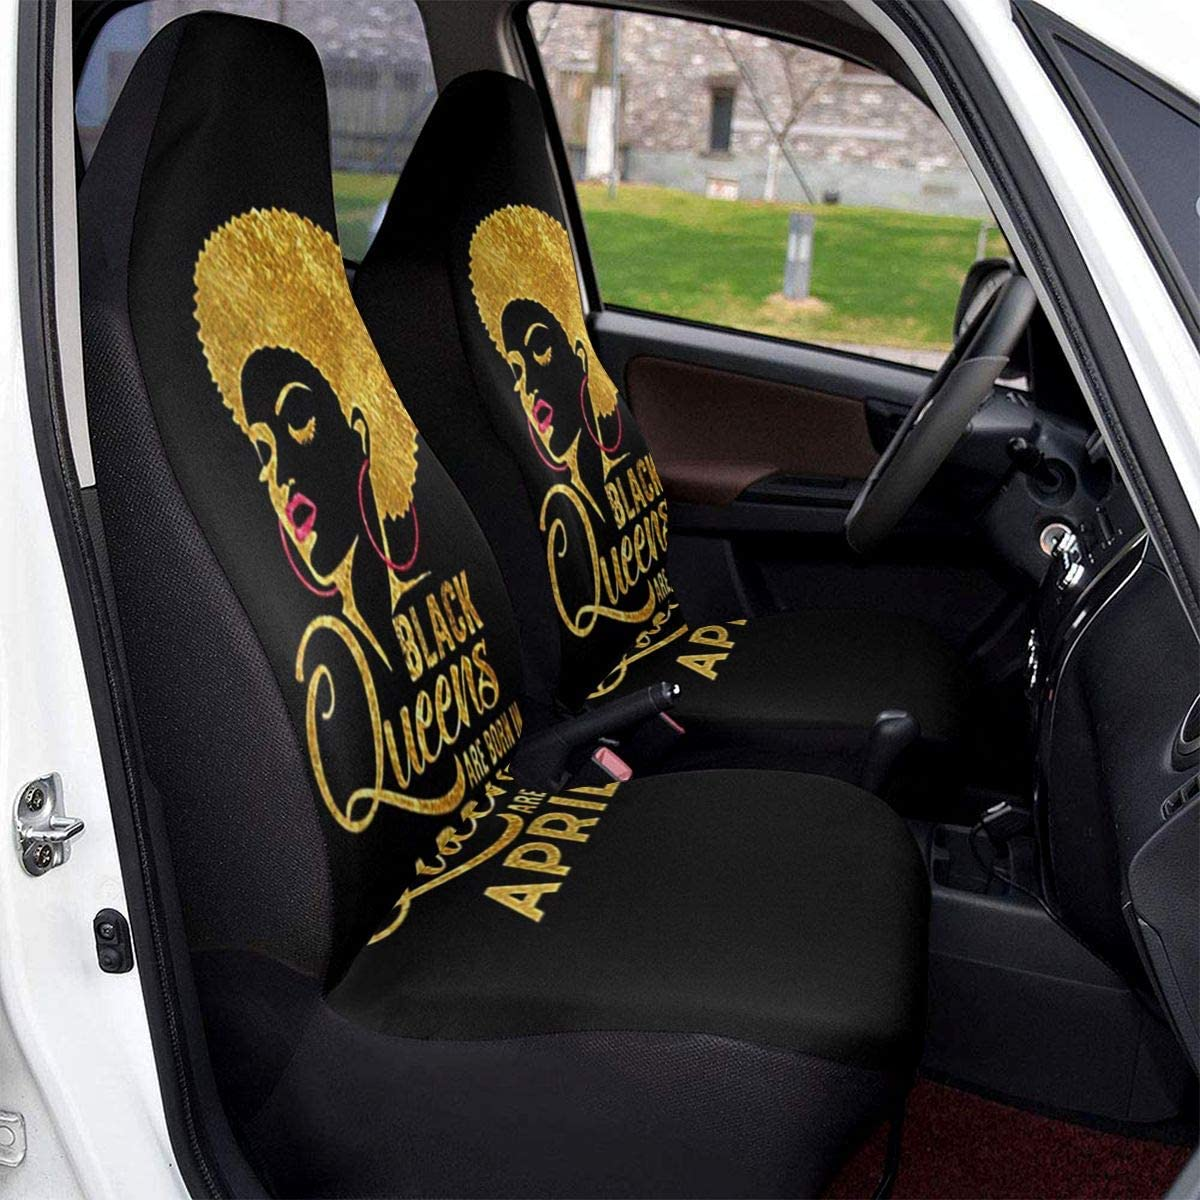 TAK-JK6 Car Seat Covers Black Queens are Born in April Front Seat Protectors Cushion Compatible with Most Cars Truck SUV Van